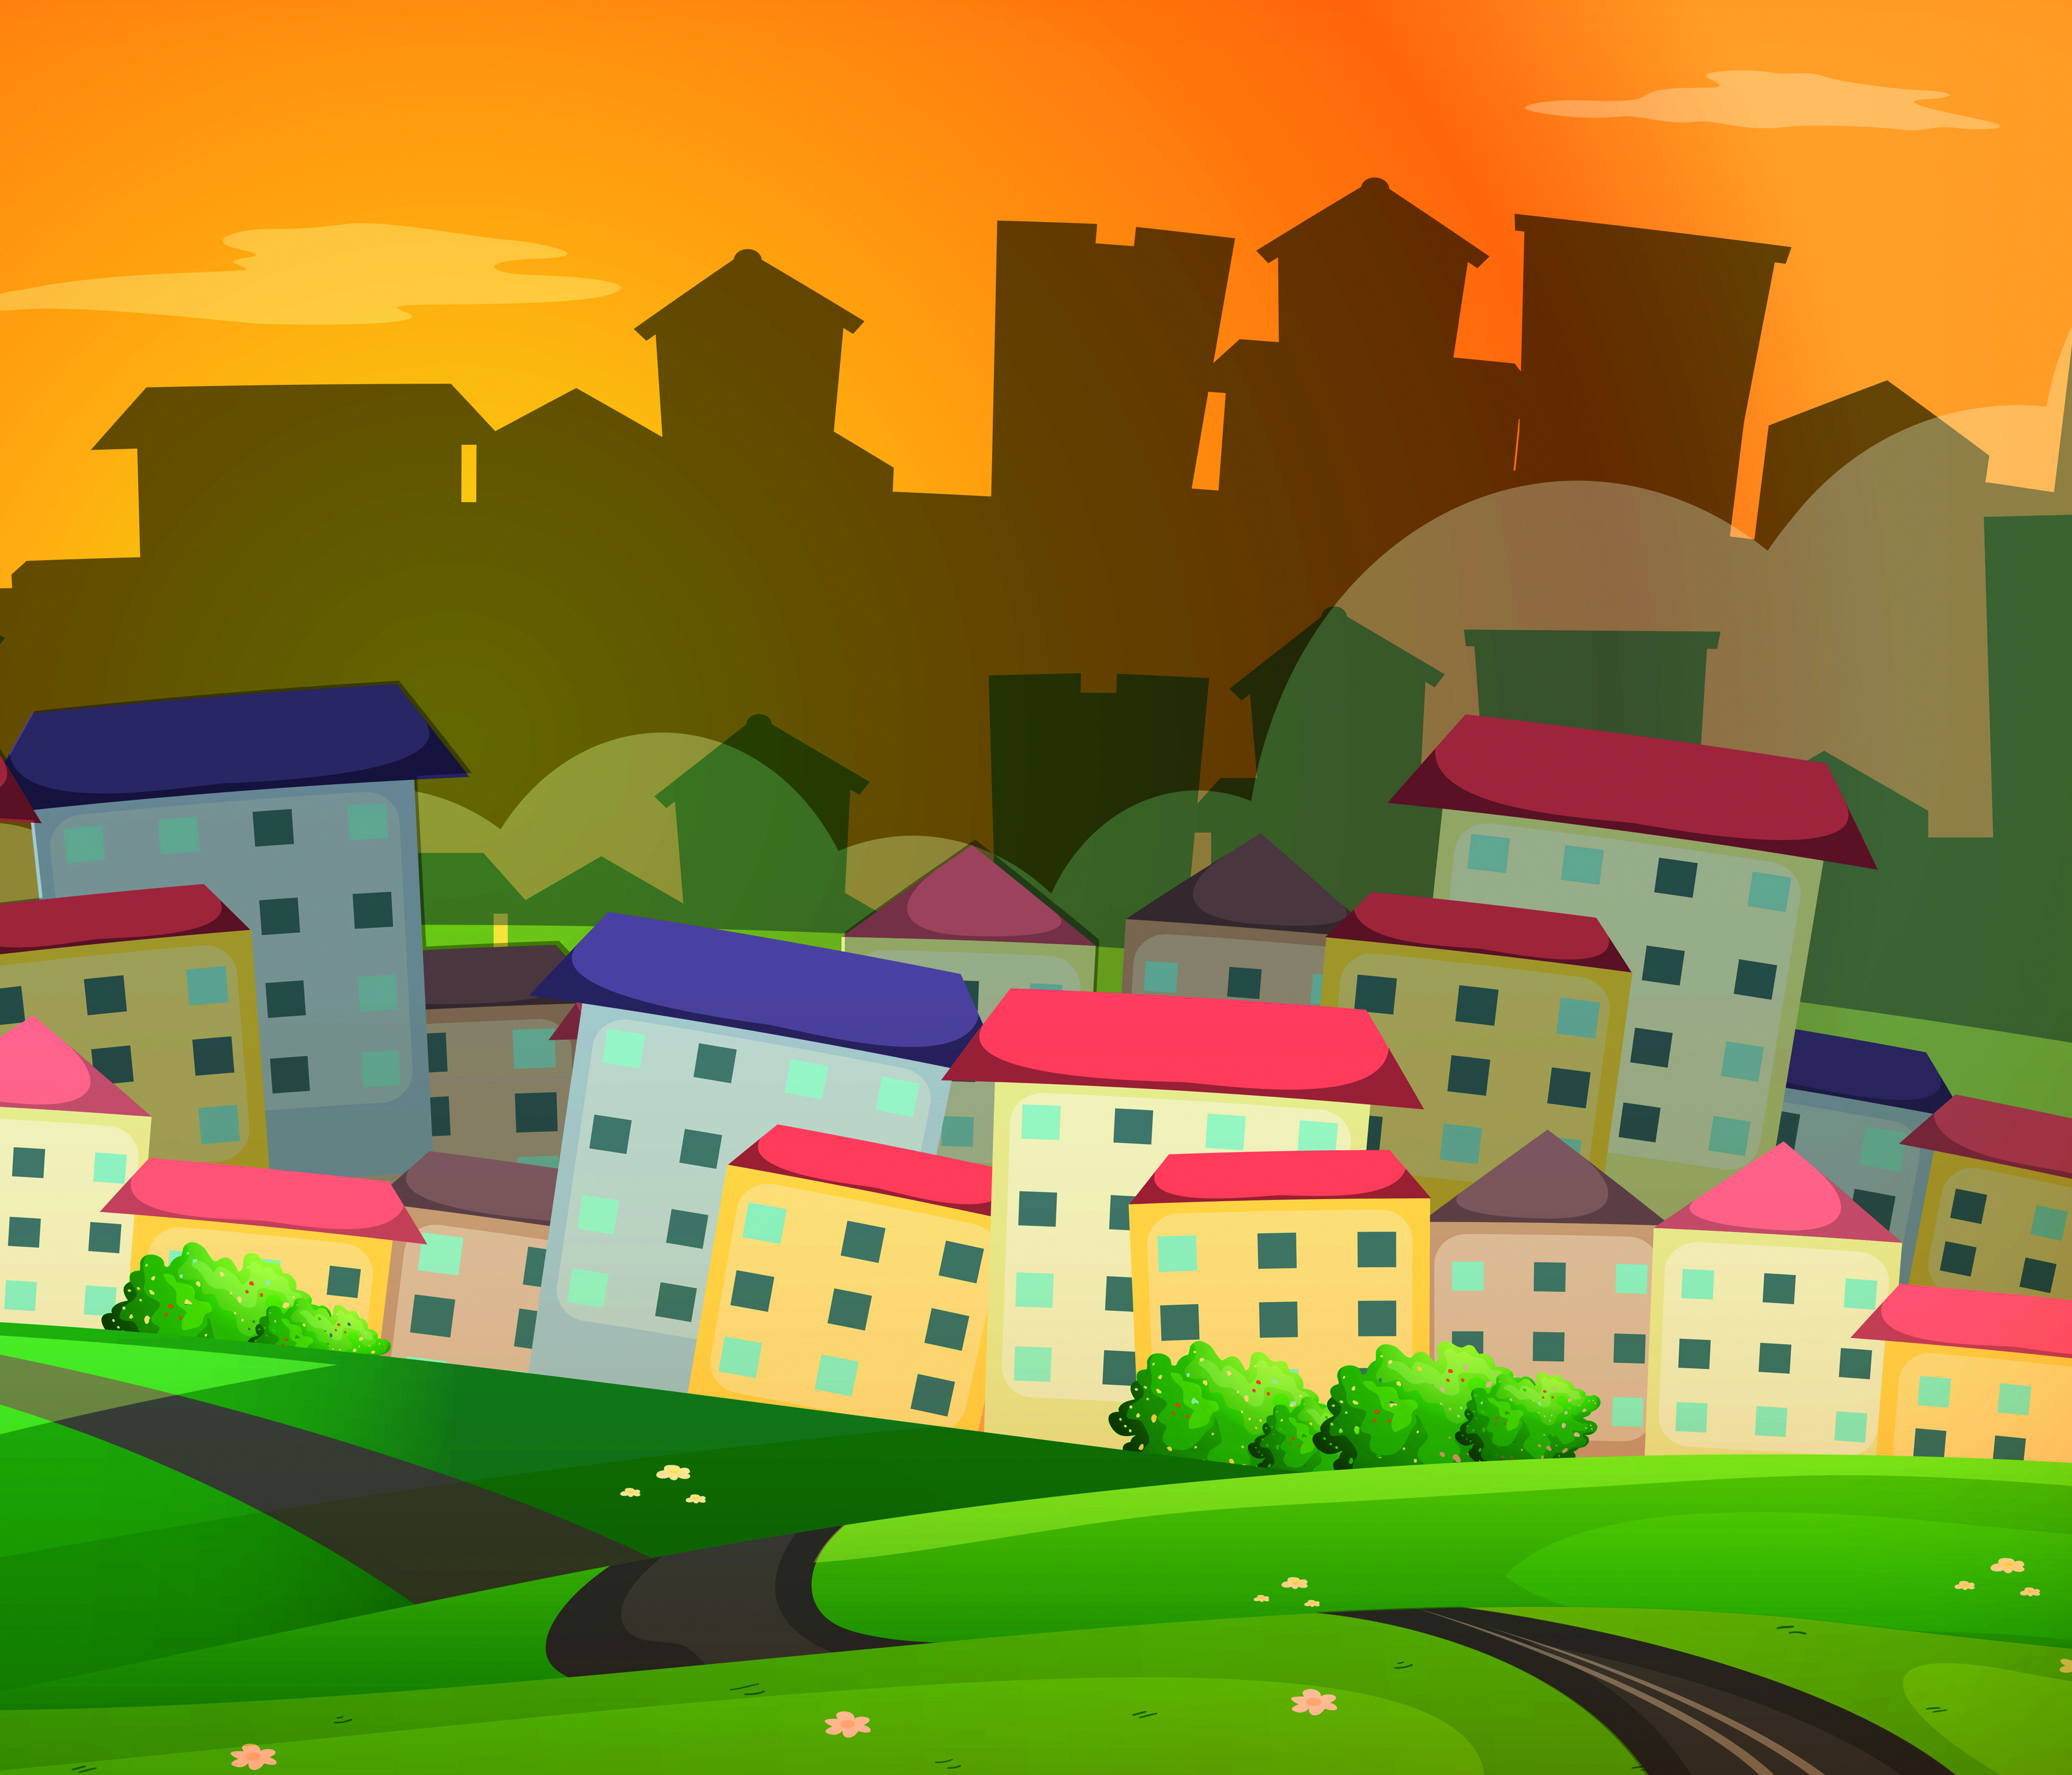 Background scene with many houses in village